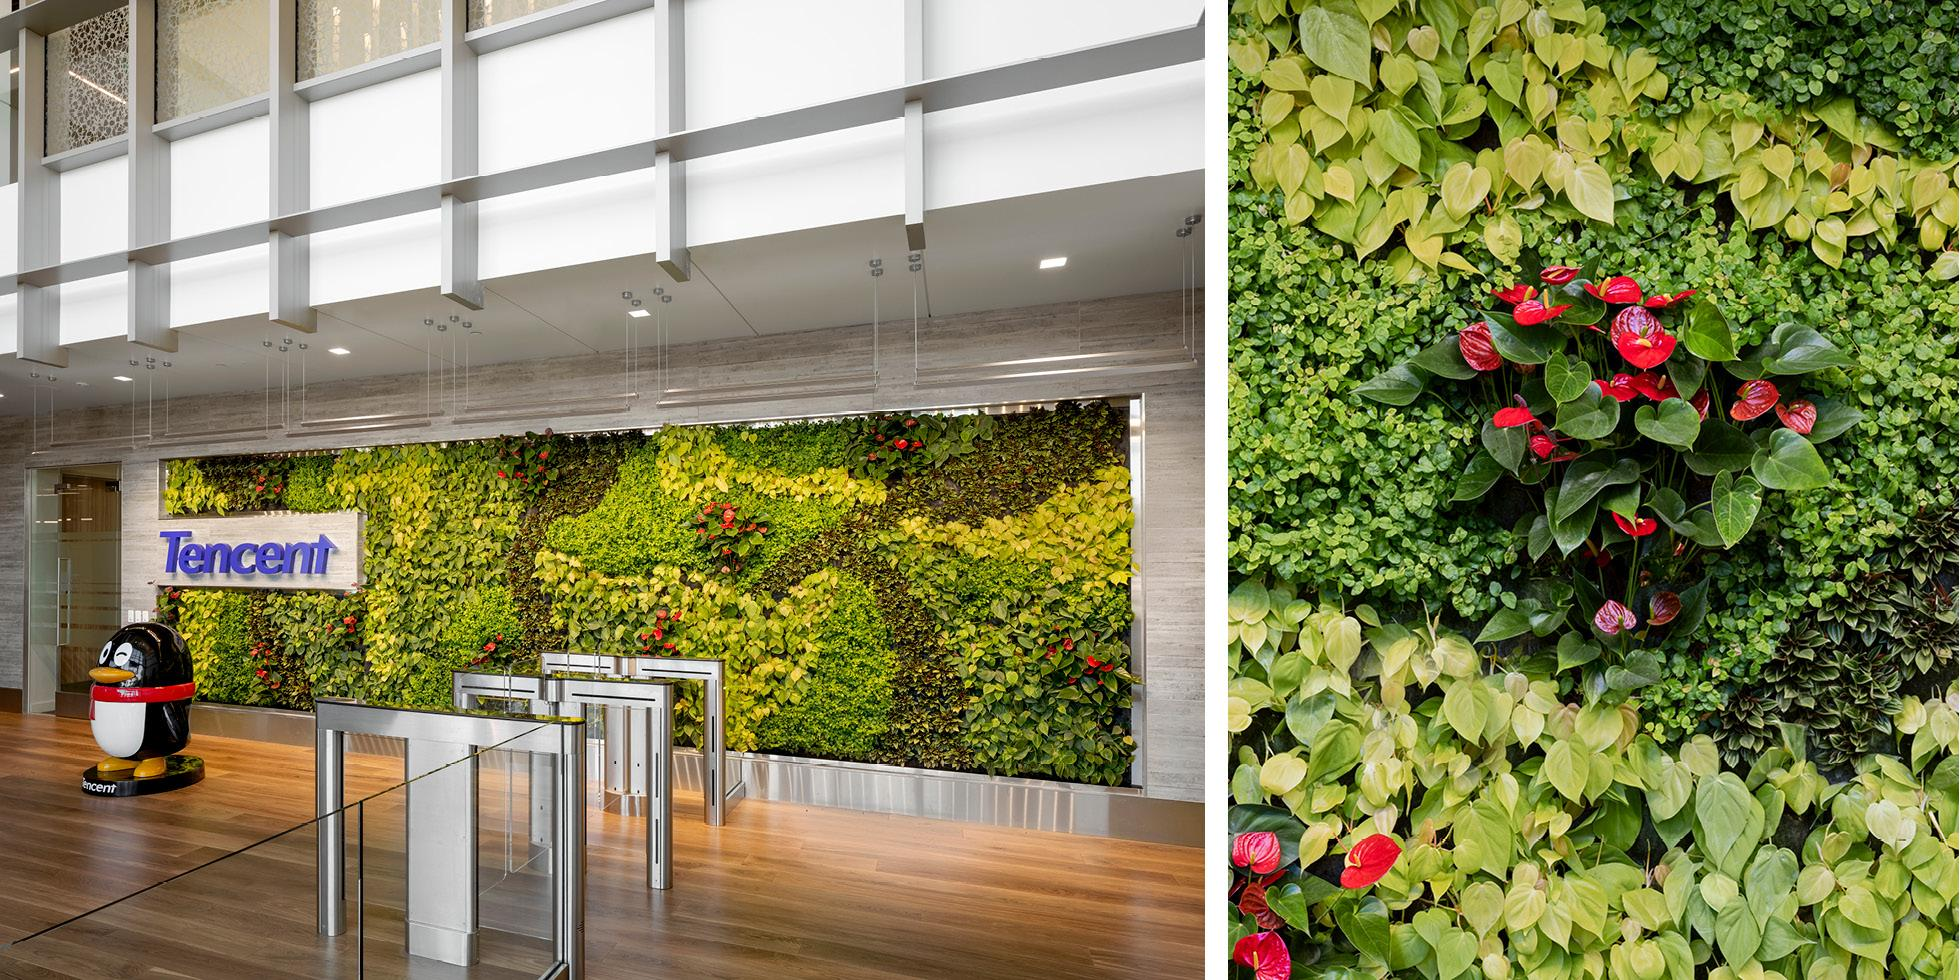 Tencent America Living Wall by Habitat Horticulture - View 2